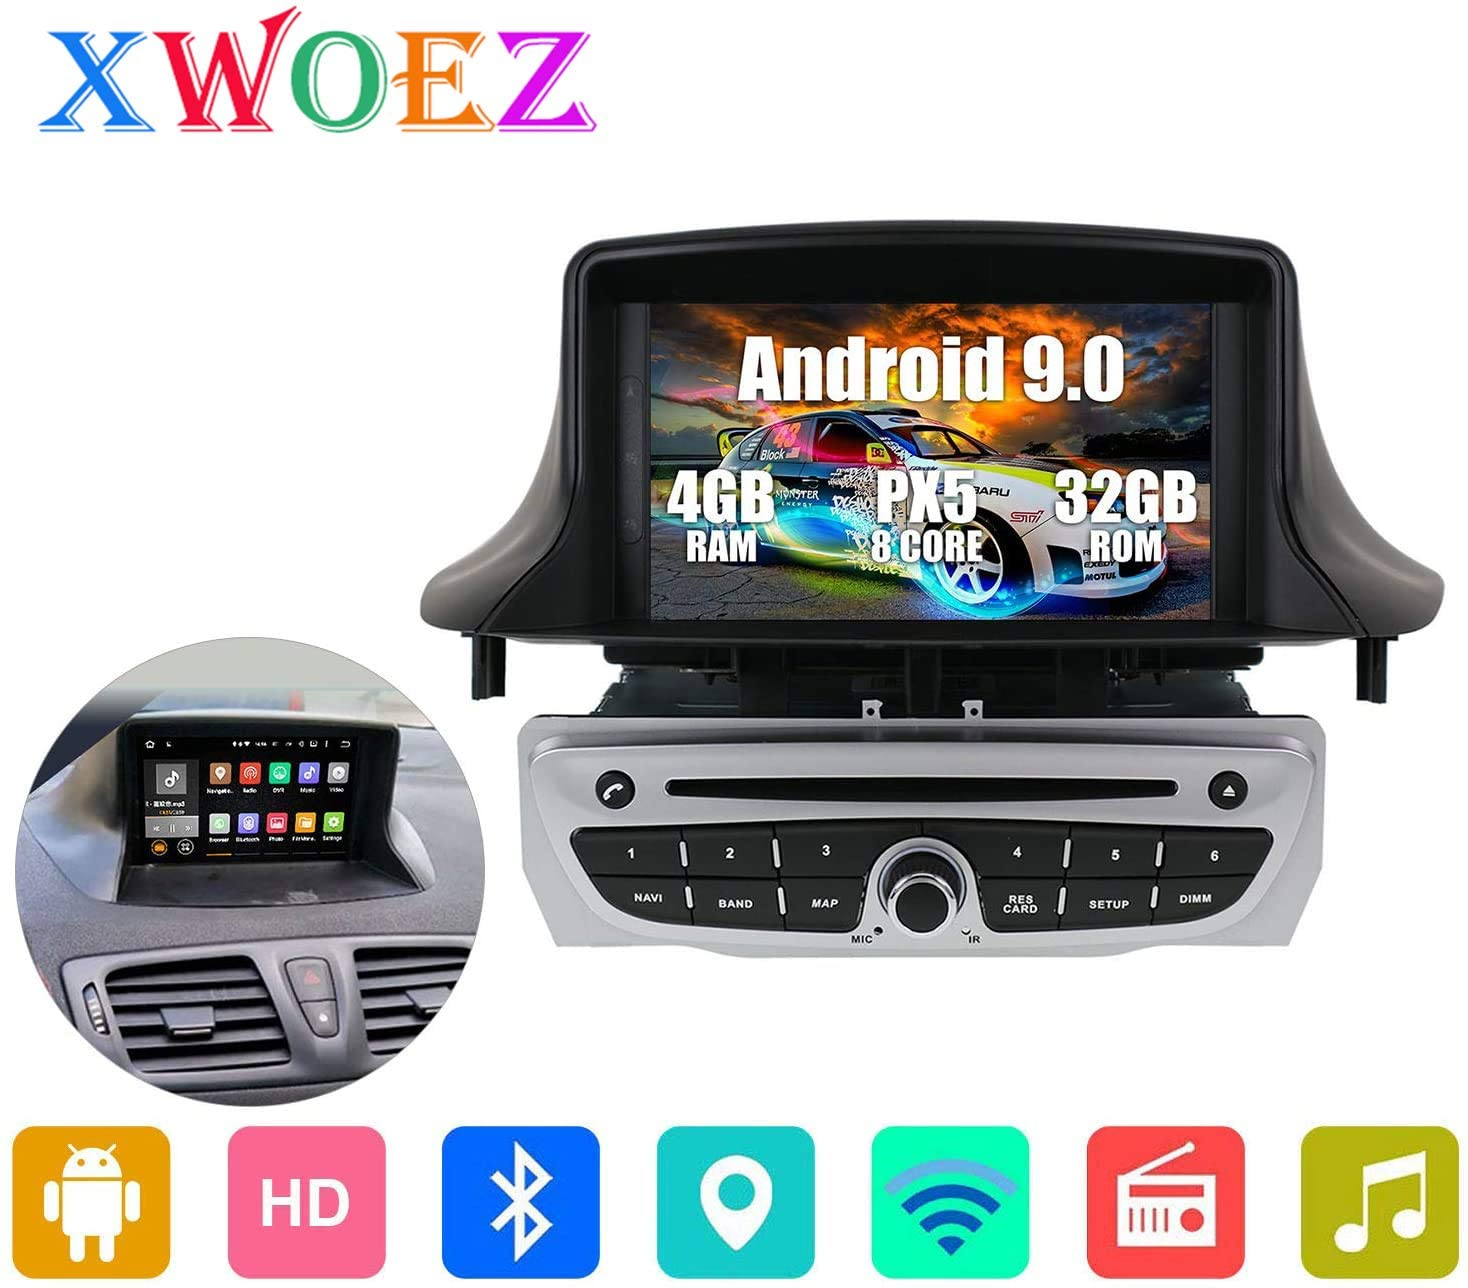 gaoweipeng for Renault Megane 3 Fluence 2009-2015 Andriod 9.0 Car GPS Navigation Head Unit GPS Navigation System Satellite Navigator DVD Player Tracker 7